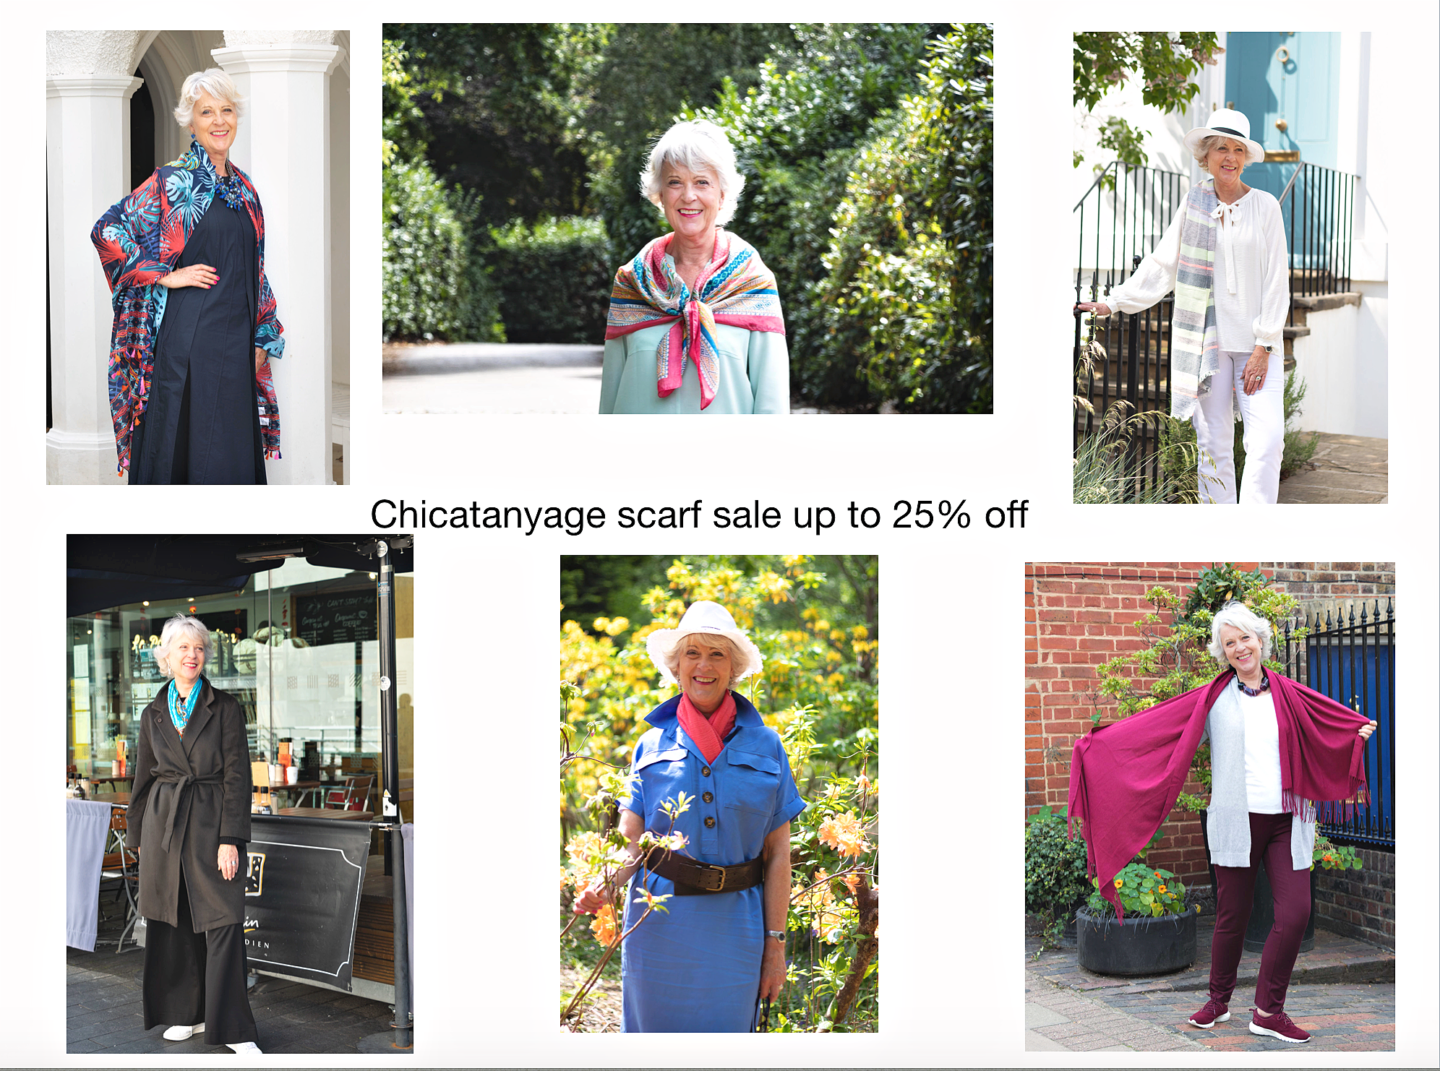 Chicatanyage scarf sale